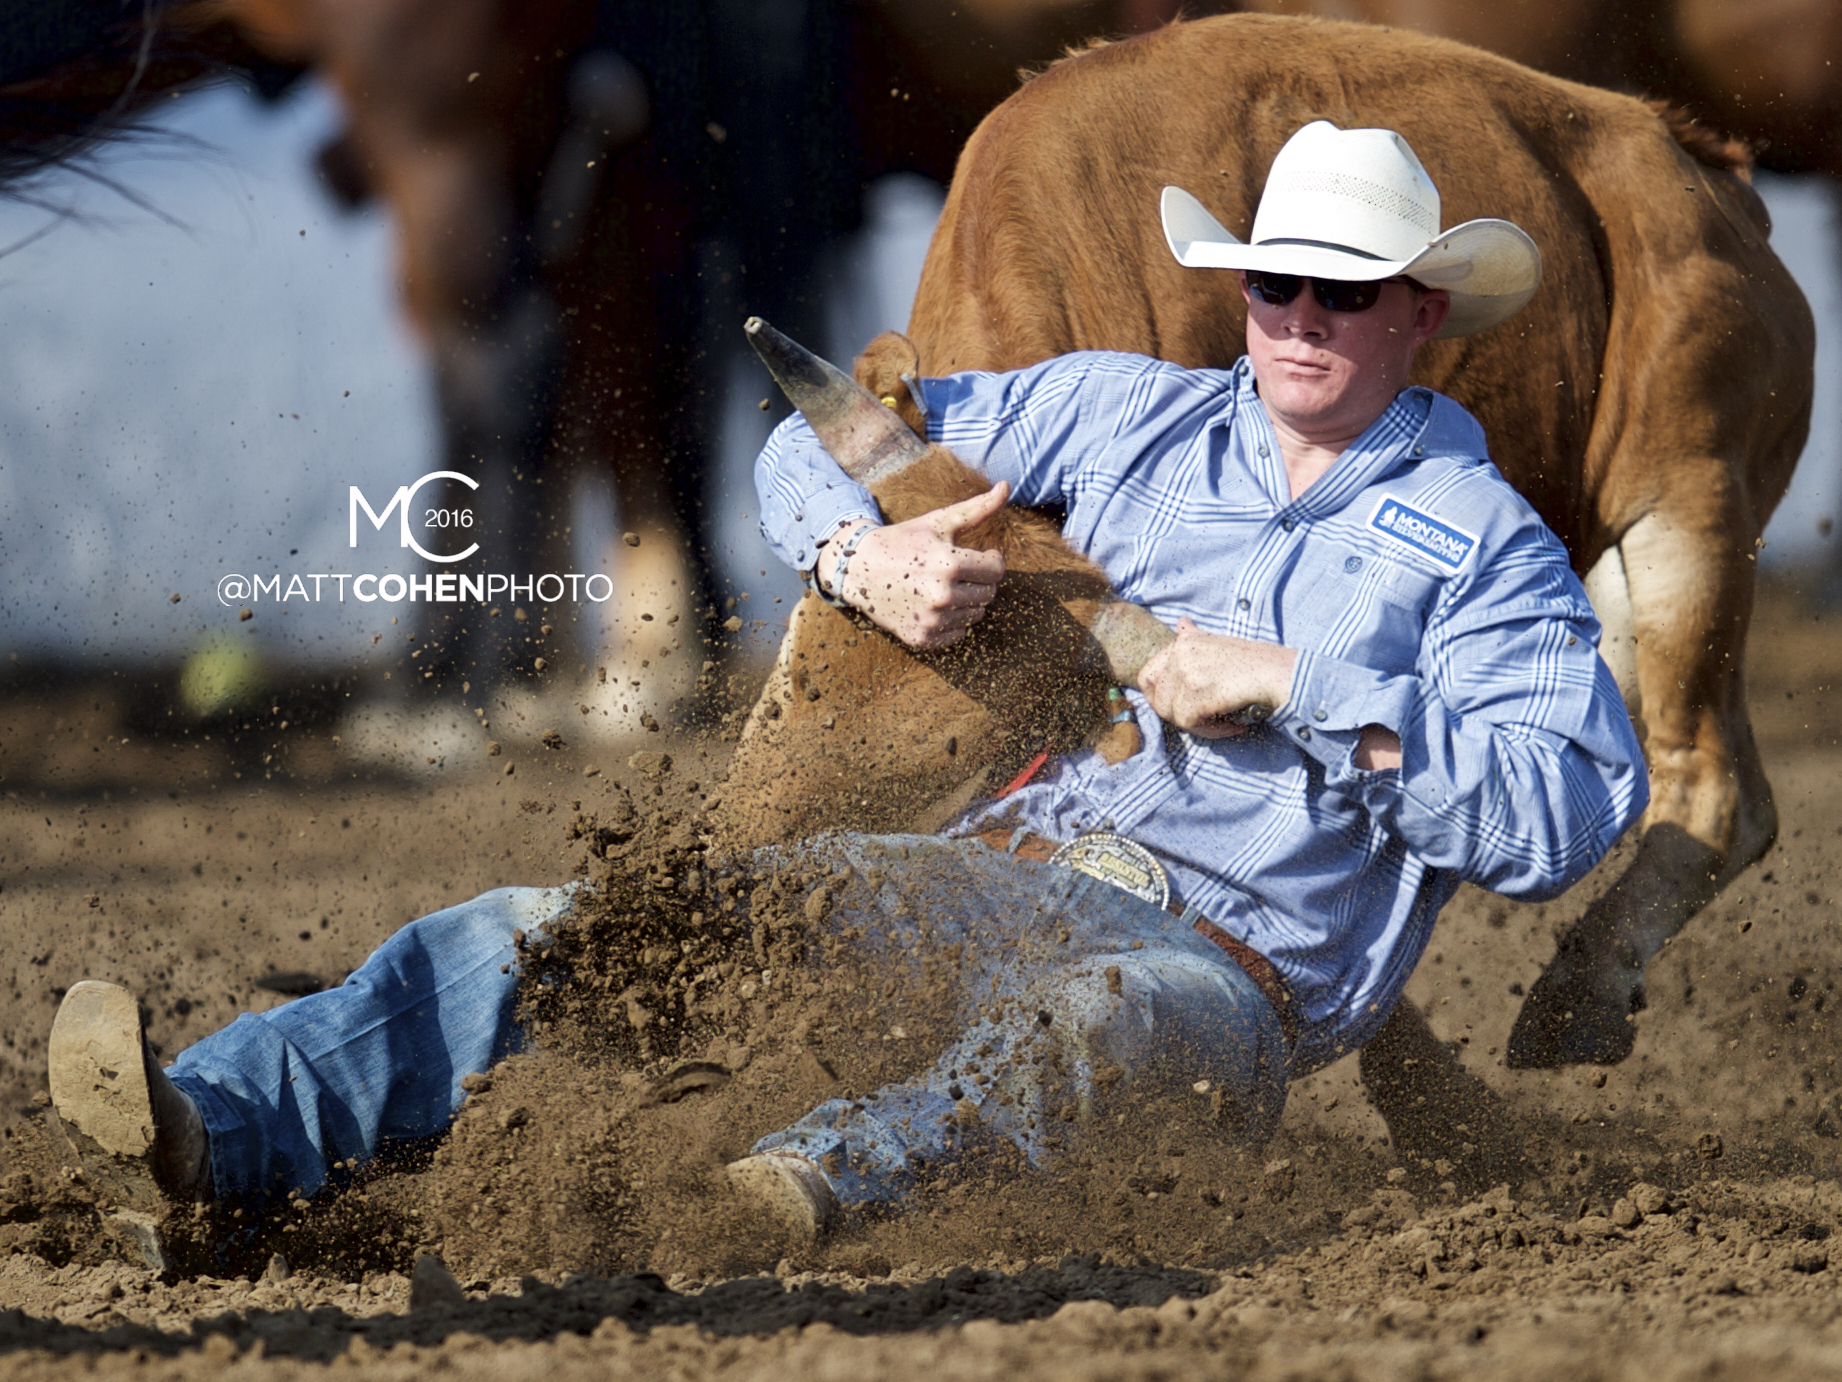 2016 WNFR: Wrangler National Finals Rodeo Qualifiers: Steer Wrestling #1 Ty Erickson